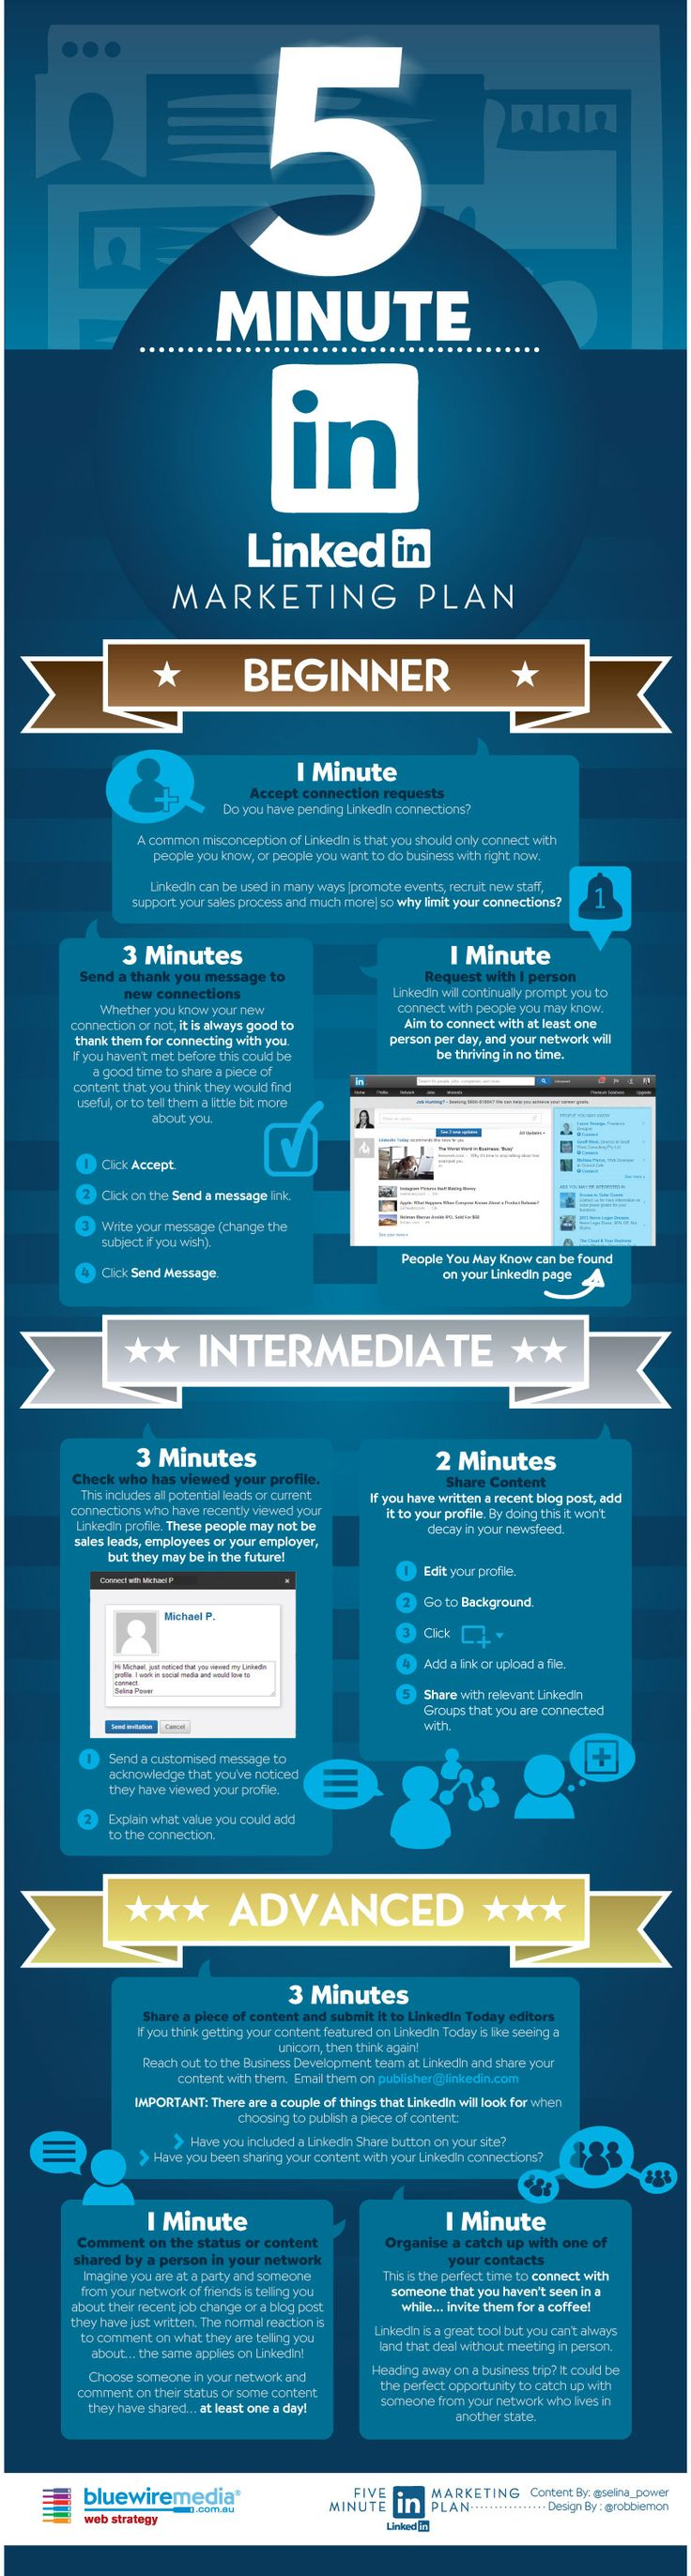 LinkedIn Marketing Strategy #infographic